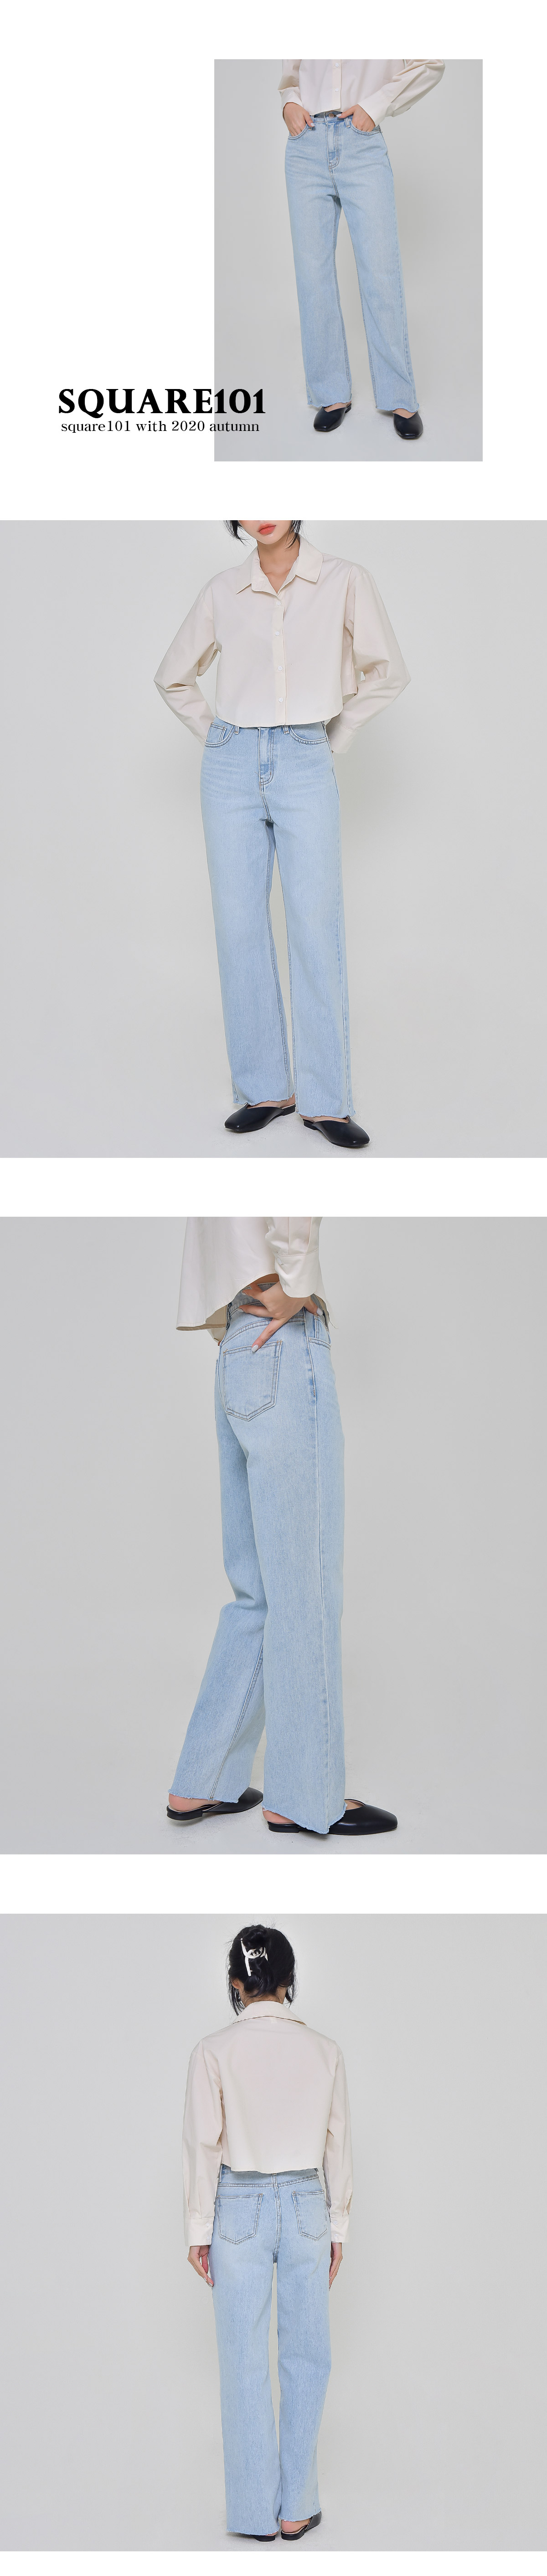 Sober denim trousers